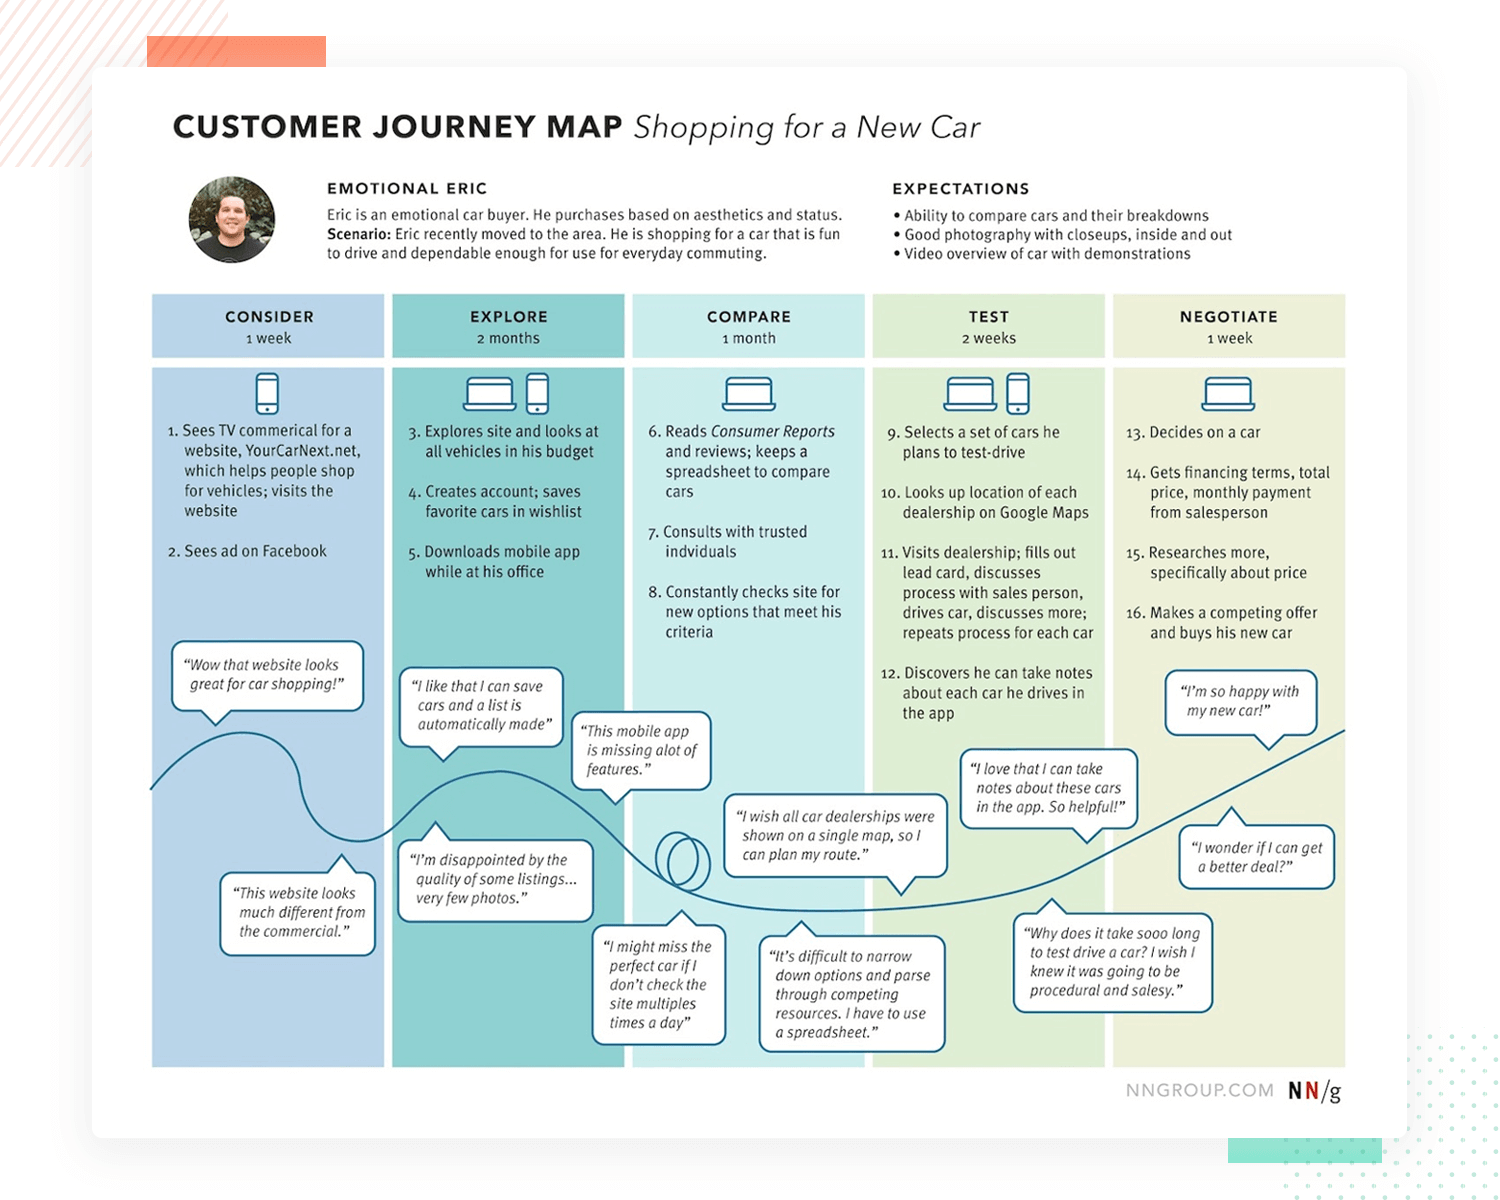 example of deliverable from requirements - user journey map